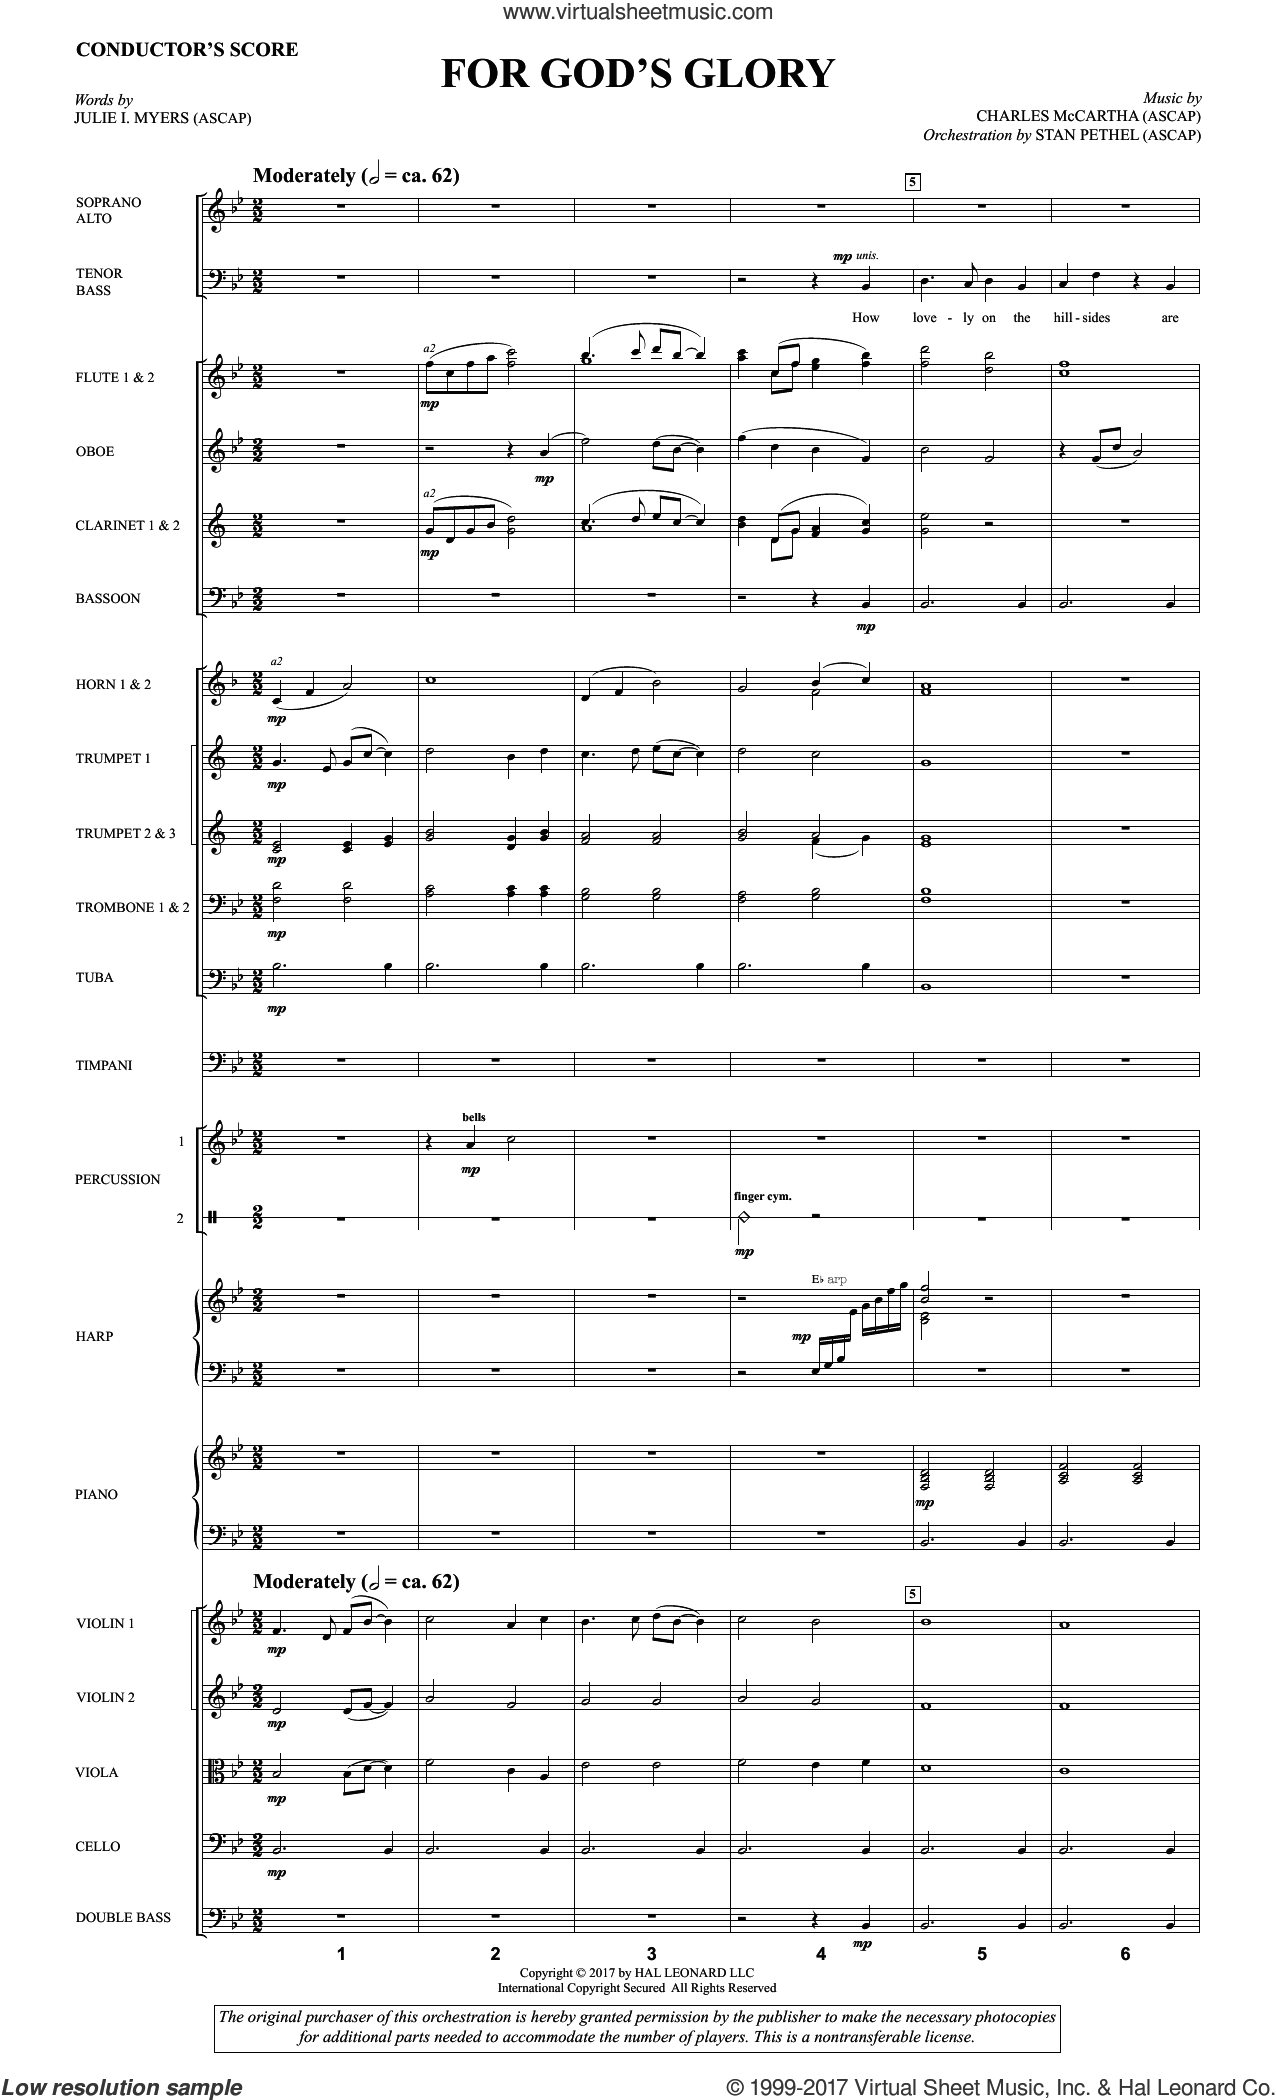 For God's Glory (COMPLETE) sheet music for orchestra/band by Charles McCartha and Julie I. Myers, intermediate skill level